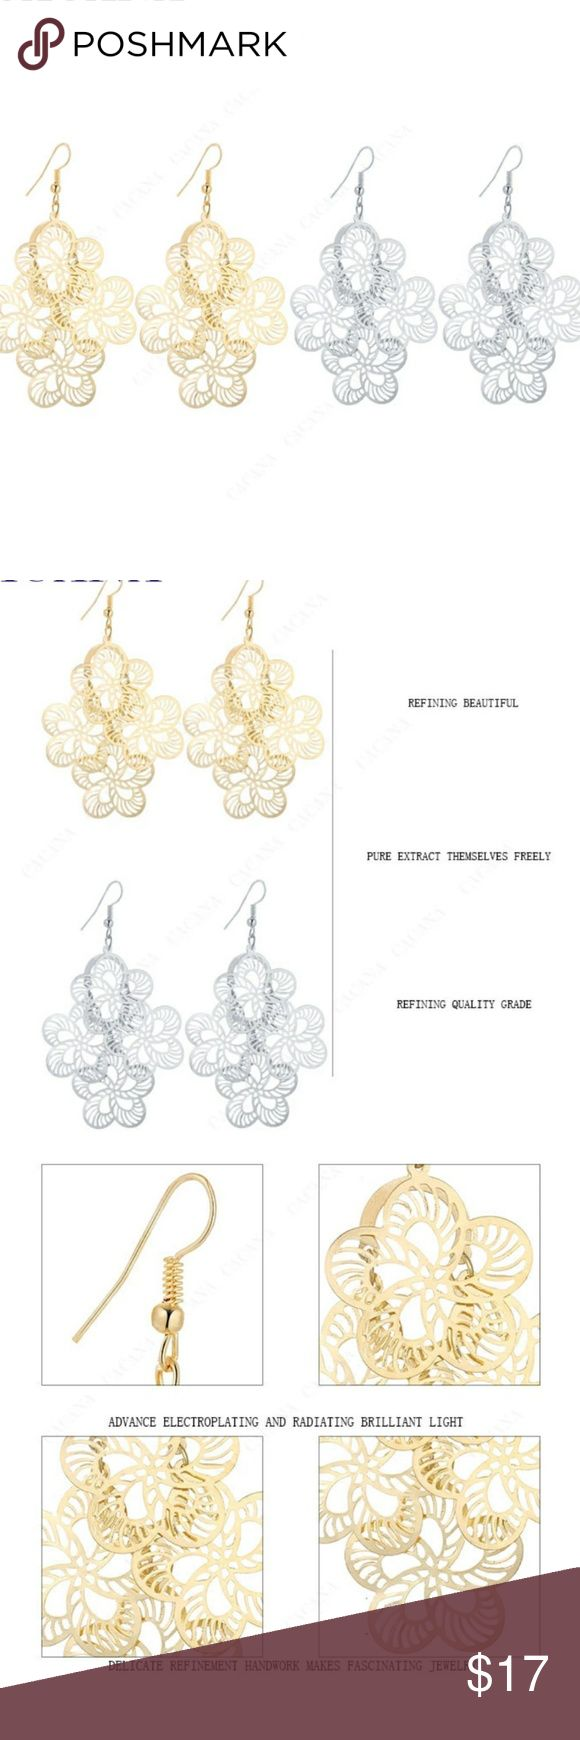 ANY 4 PAIRS FOR $15.  STATEMENT BOHO EARRINGS! Design consists of 4 dangling flowers. Earrings are not heavy so they won't make you feel weighted down & no worries about stretching out your earlobes! Earrings are thin, lightweight Alloy metal. They are priced great! Bundle & save on shipping! Choose Gold or Silver in Options. Once you add 4 pairs to your bundle, submit offer for $15 & it will be accepted! Gold stock# 103 Silver Stock # 203 Jewelry Earrings